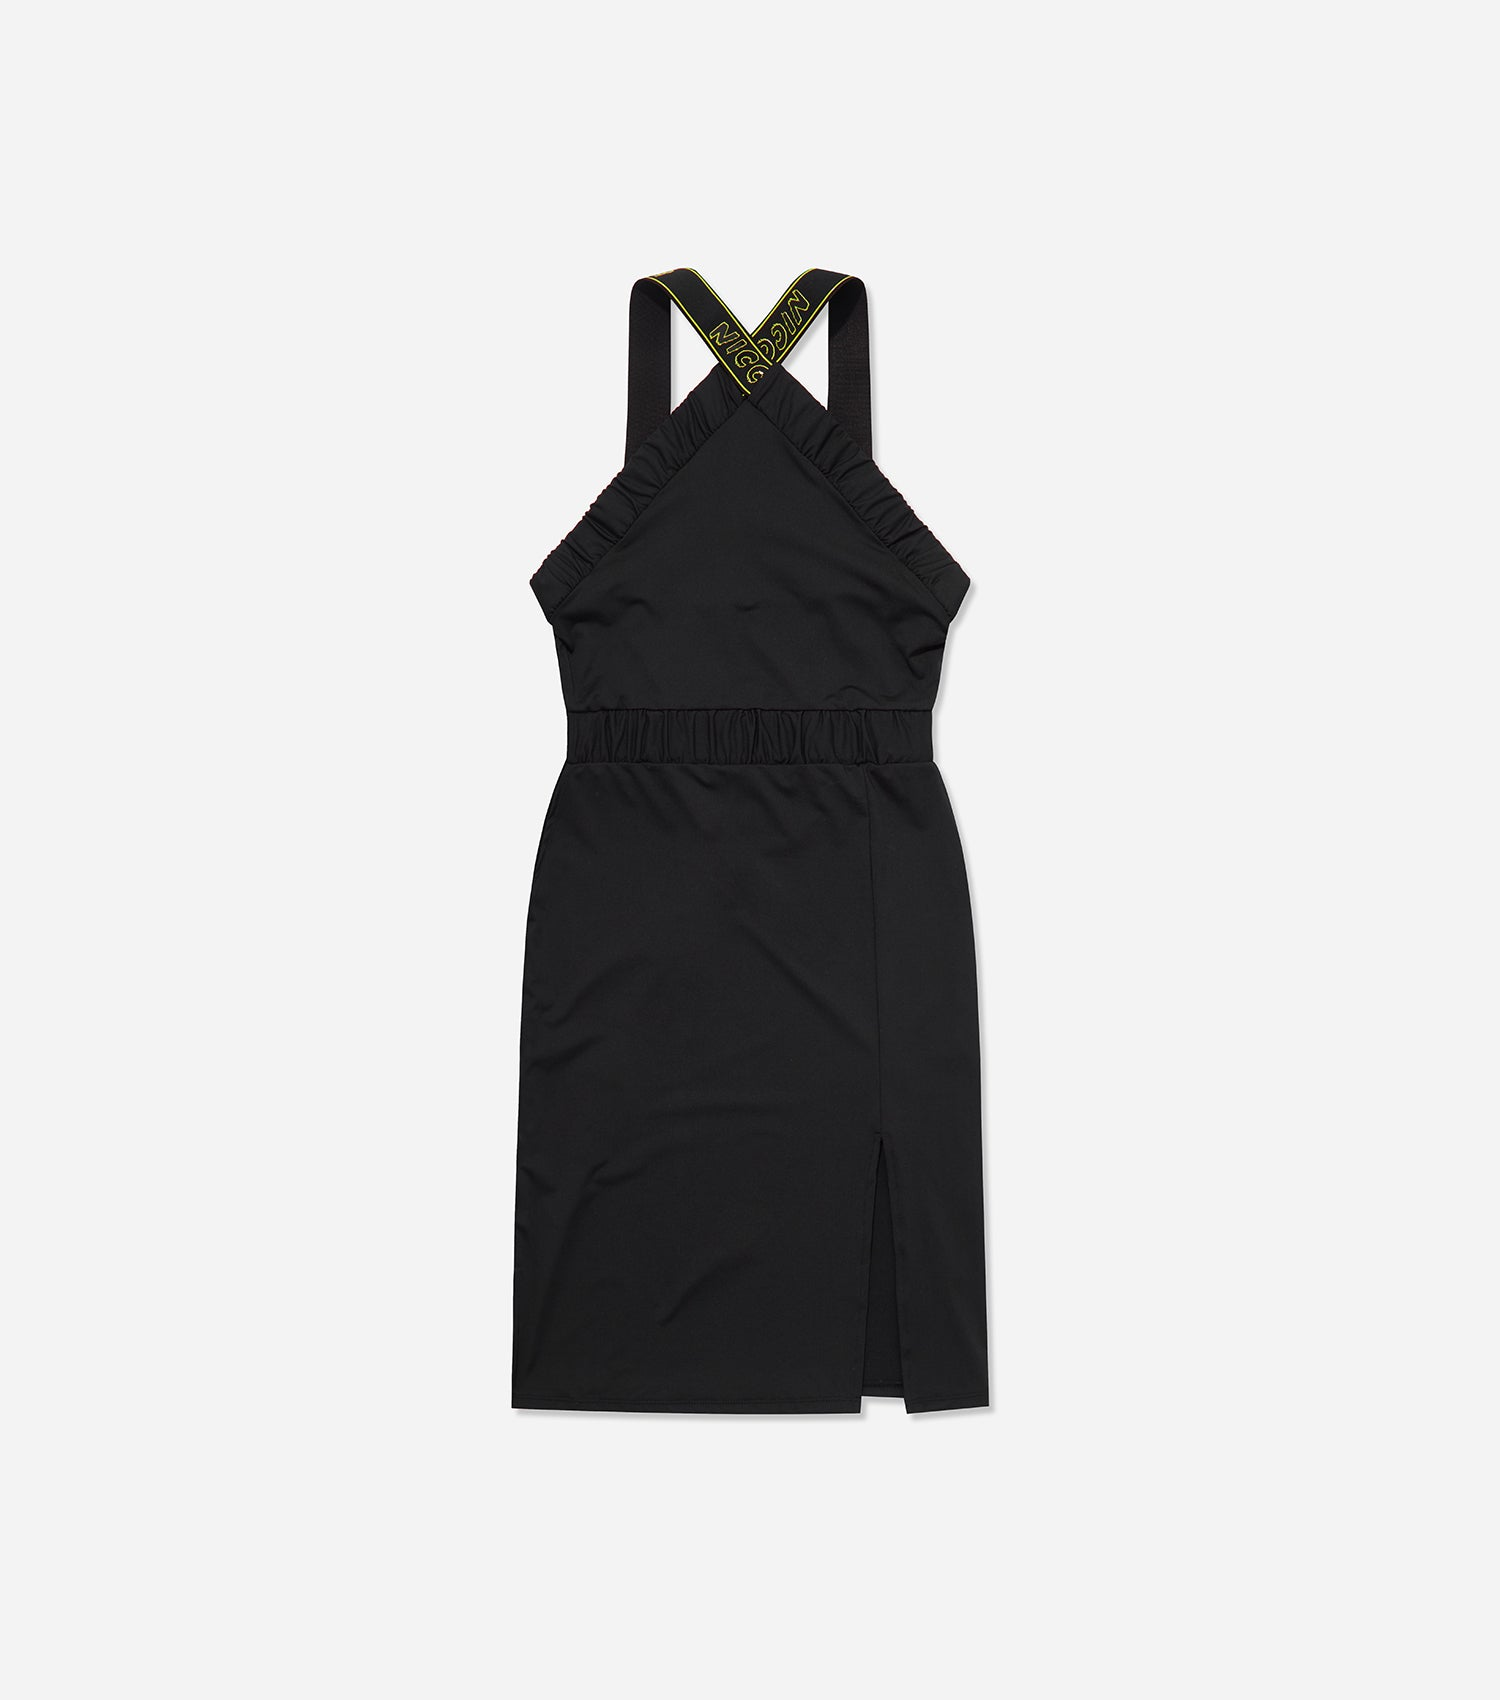 NICCE Womens Liberty Dress | Black, Dresses